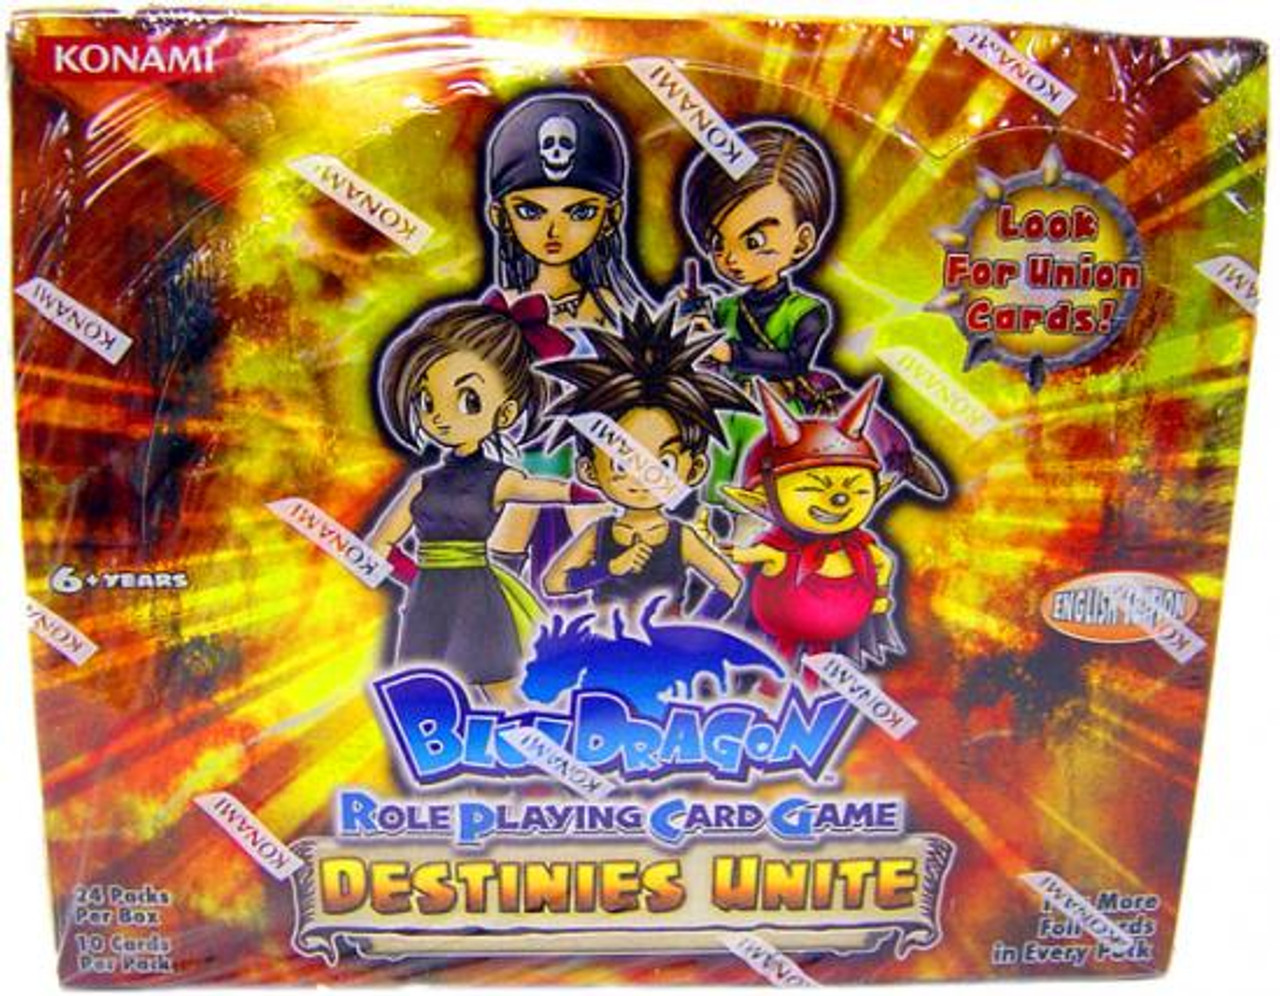 Blue Dragon Roleplaying Card Game Destinies Unite Booster Box